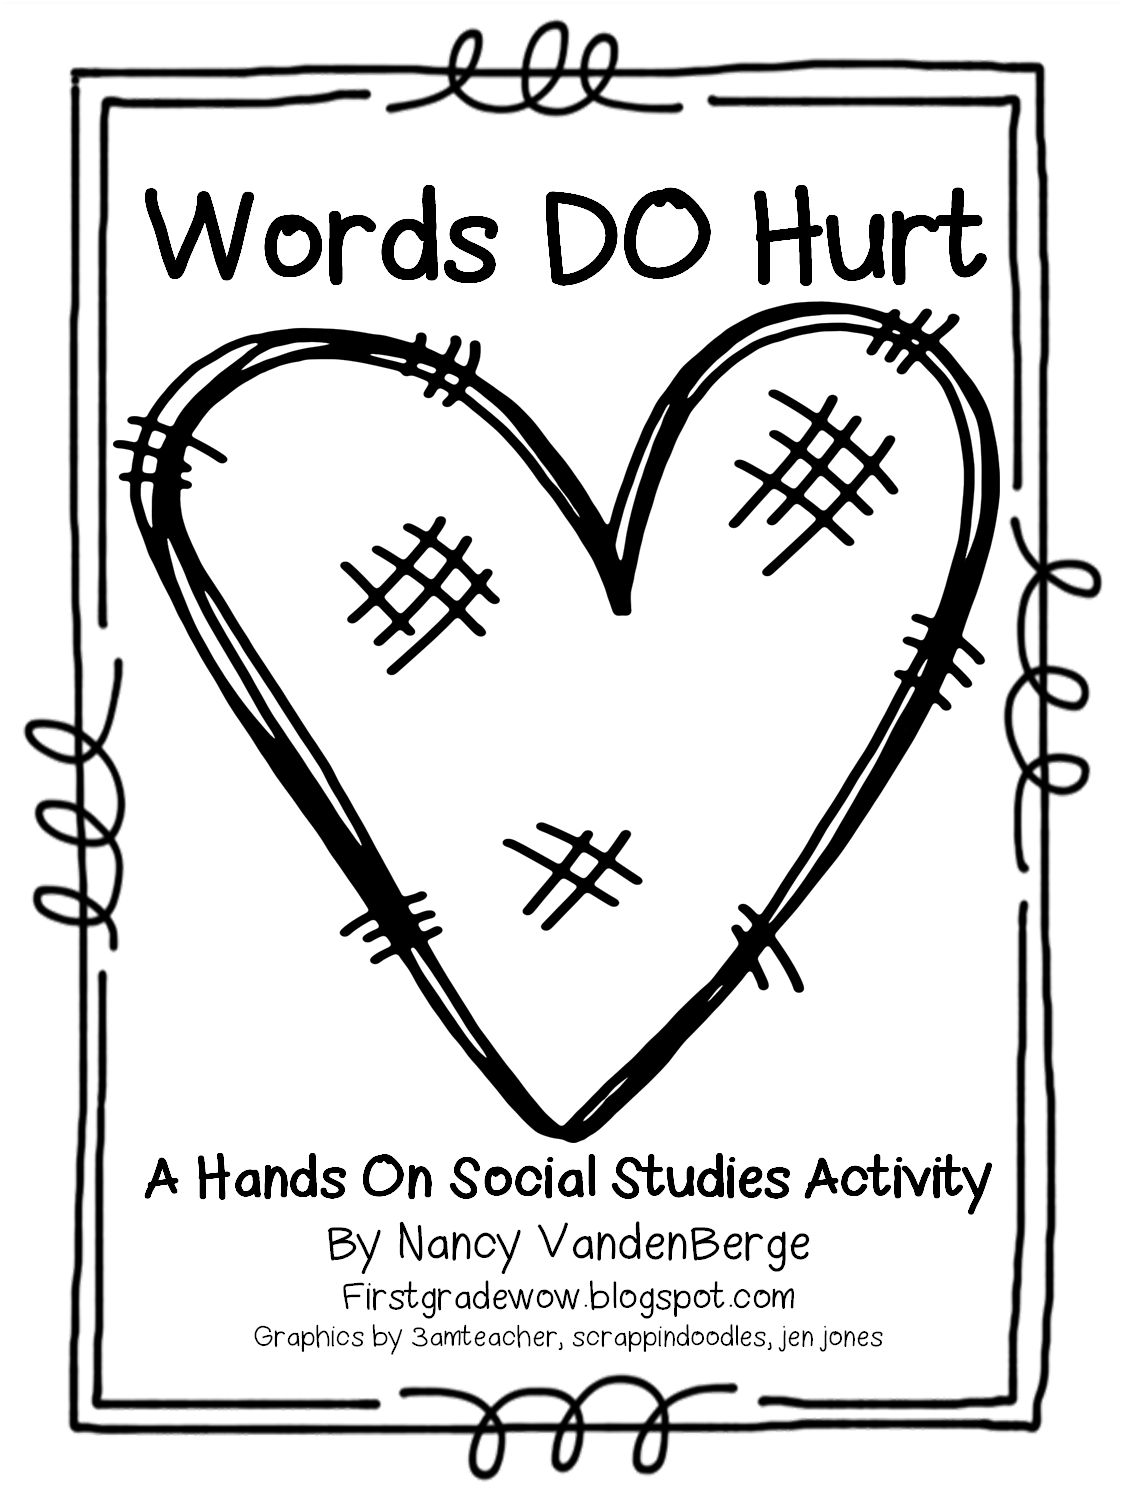 First Grade Wow: Words DO Hurt